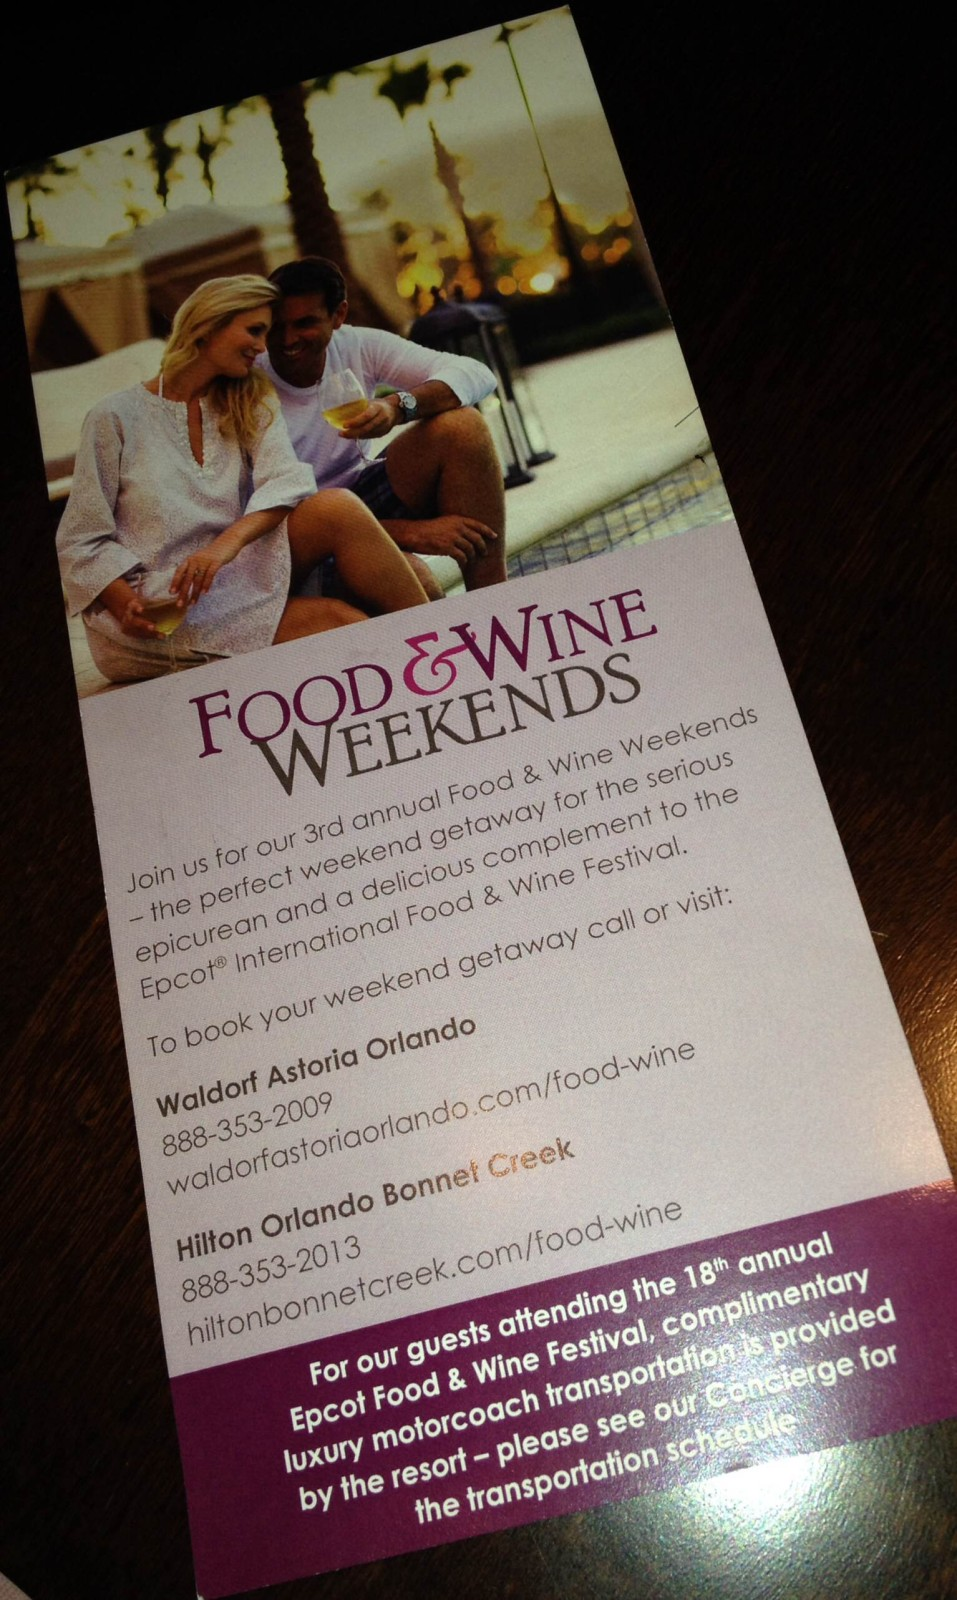 Food & Wine Weekends